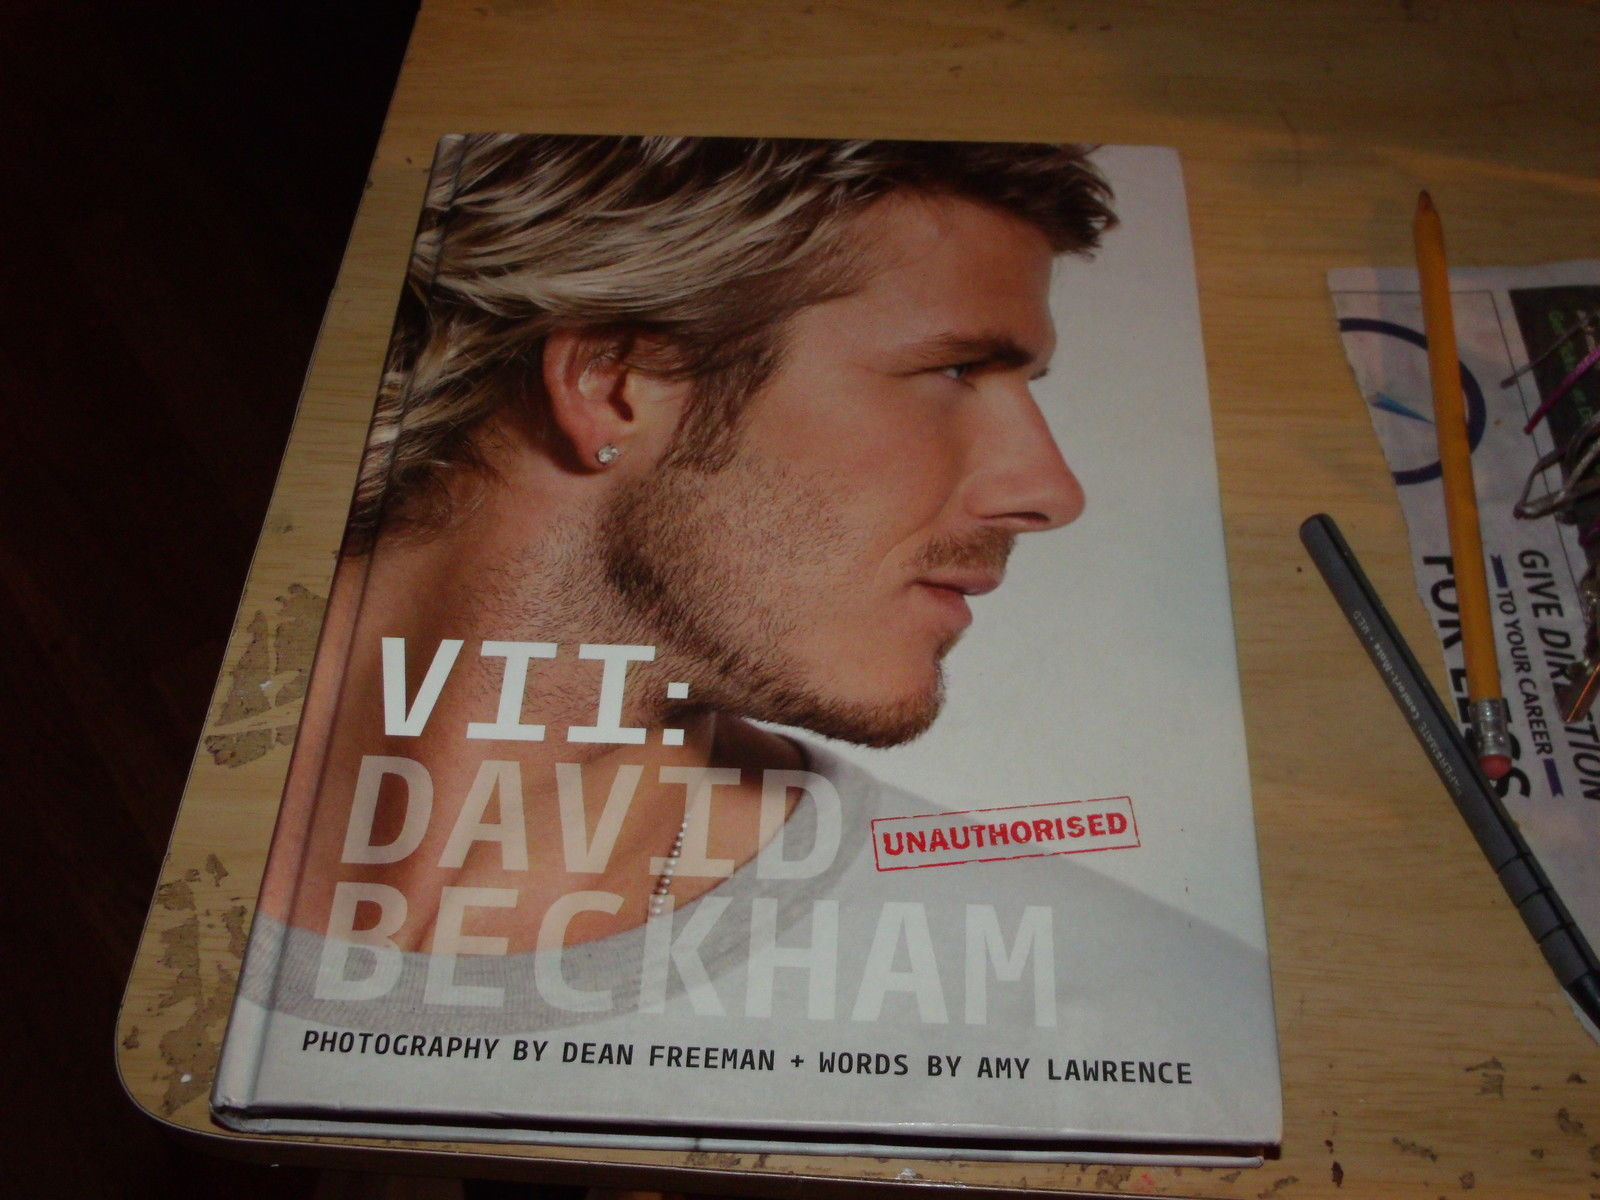 VII: David Beckham SIGNED by Amy Lawrence & DEAN FREEMAN (2006, Hardcover)